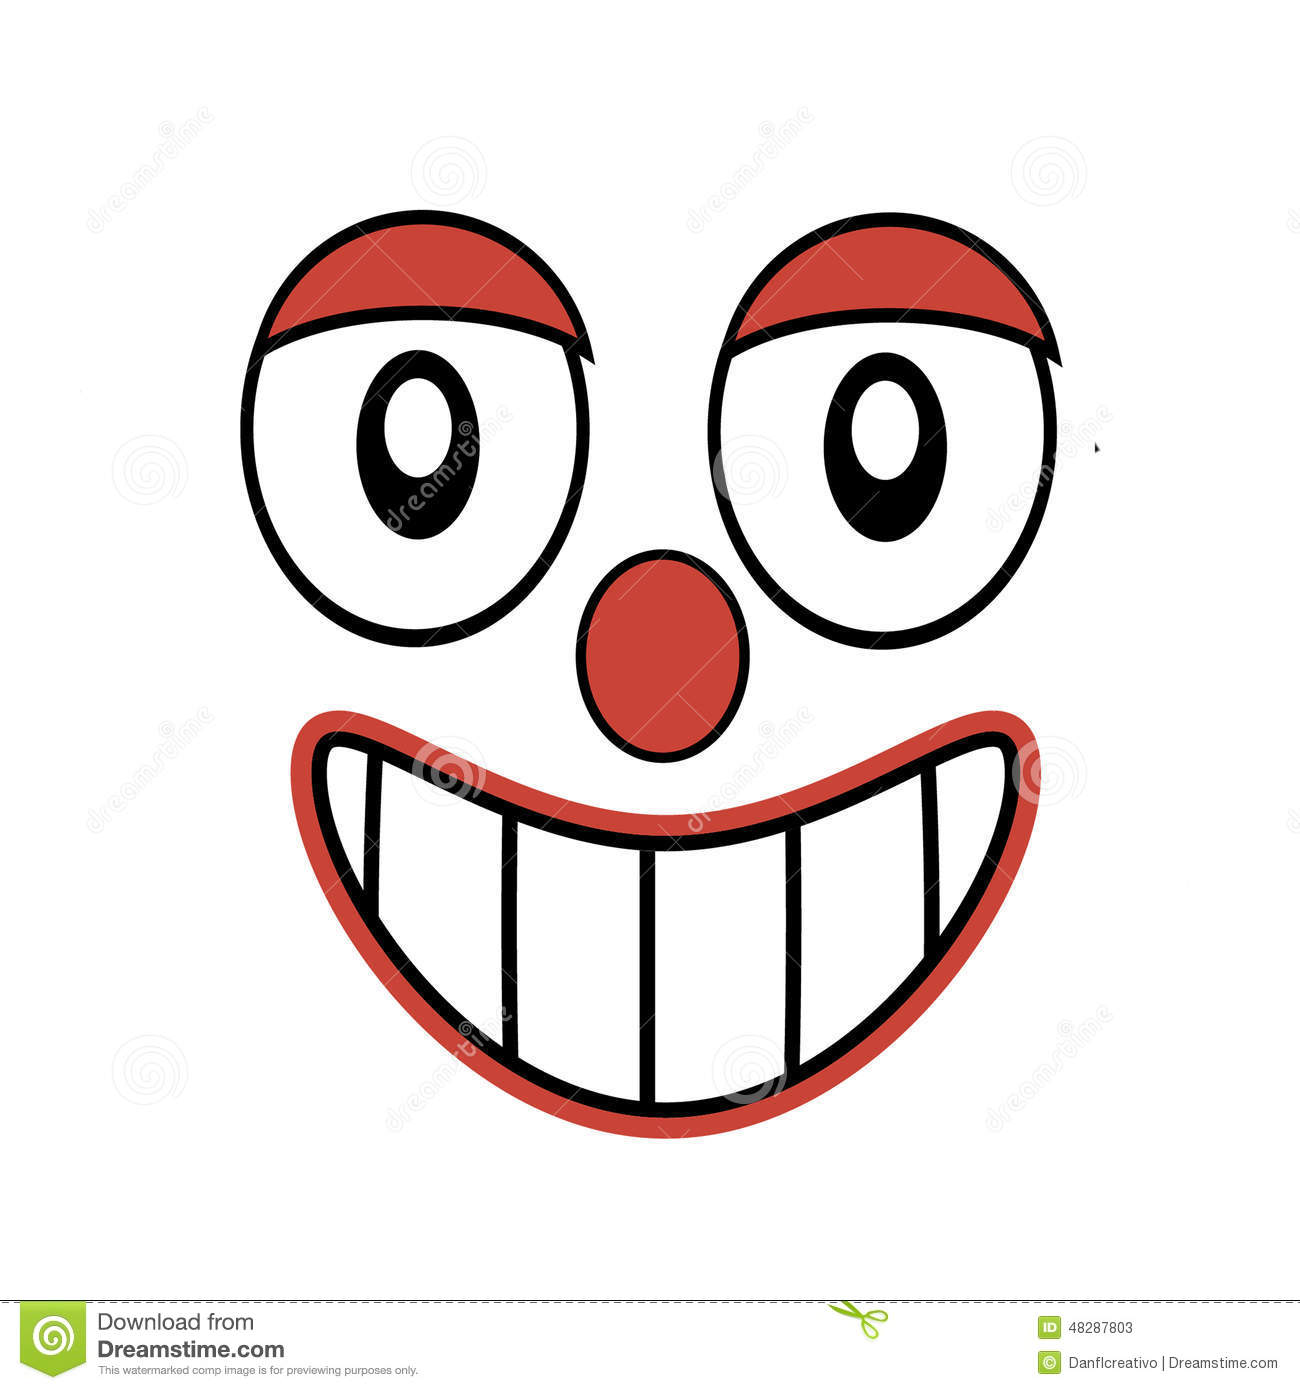 It is a picture of Nifty Funny Laughing Drawing